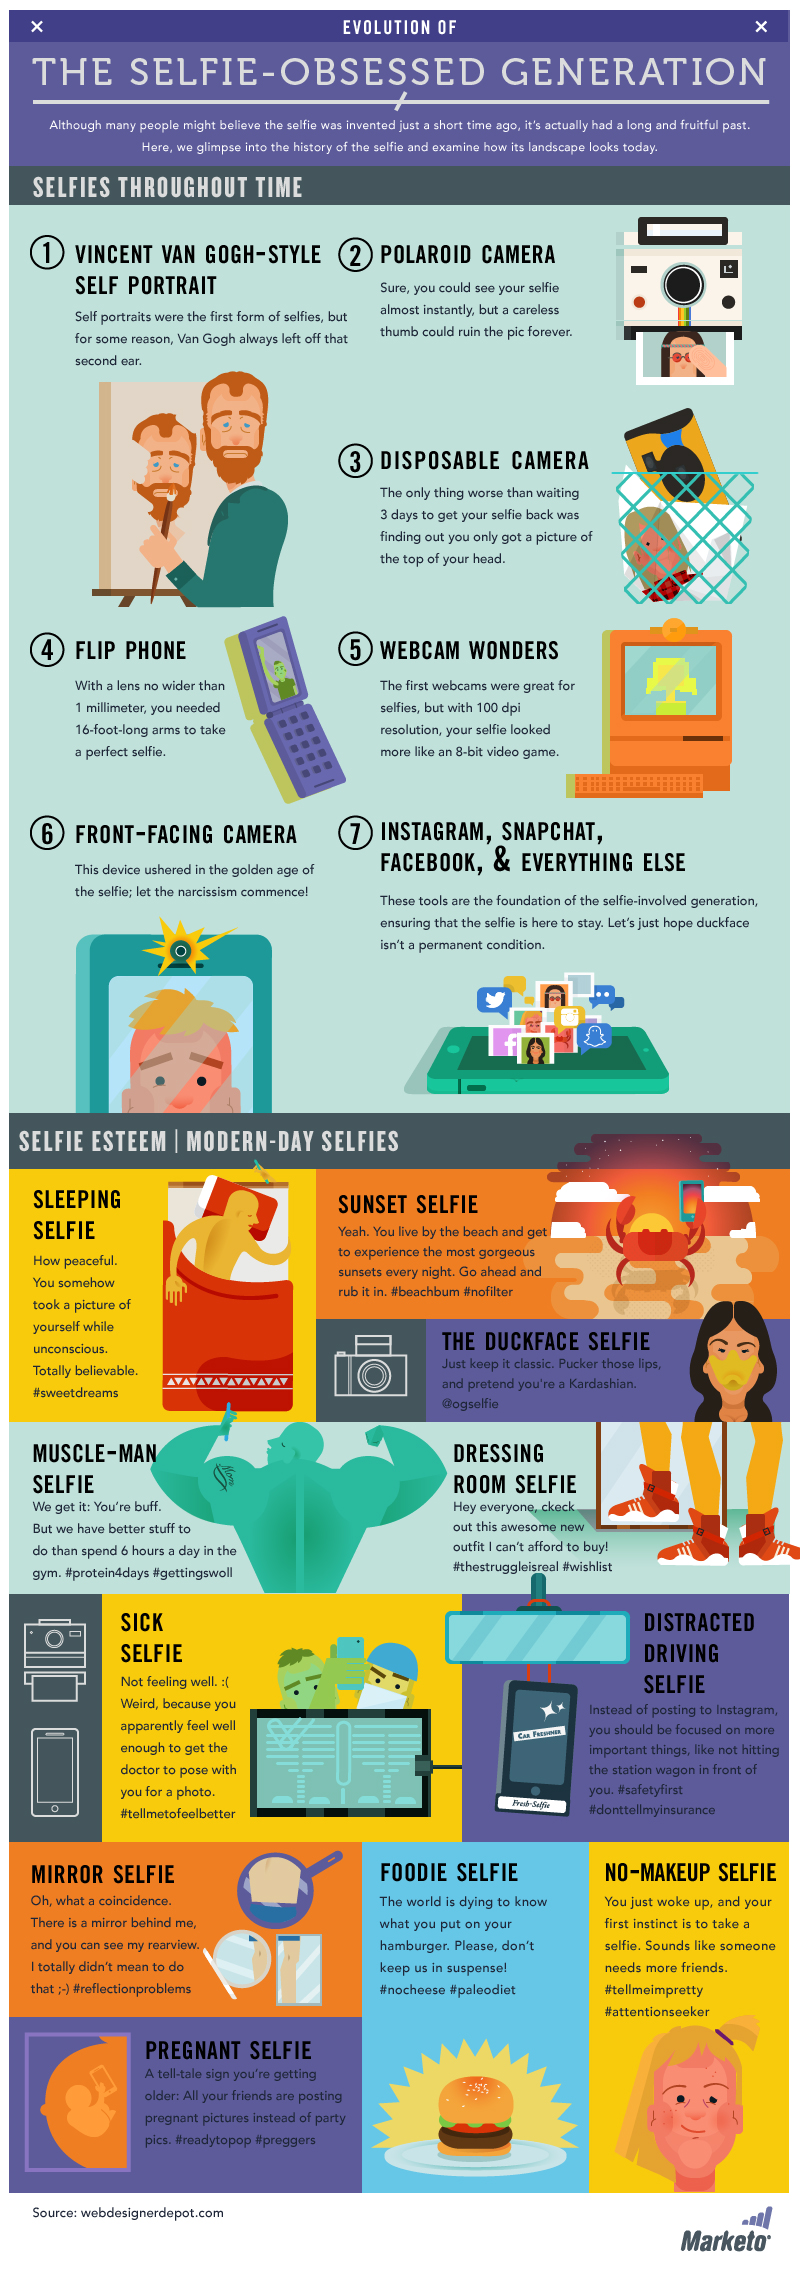 The Evolution of the Selfie-Obsessed Generation